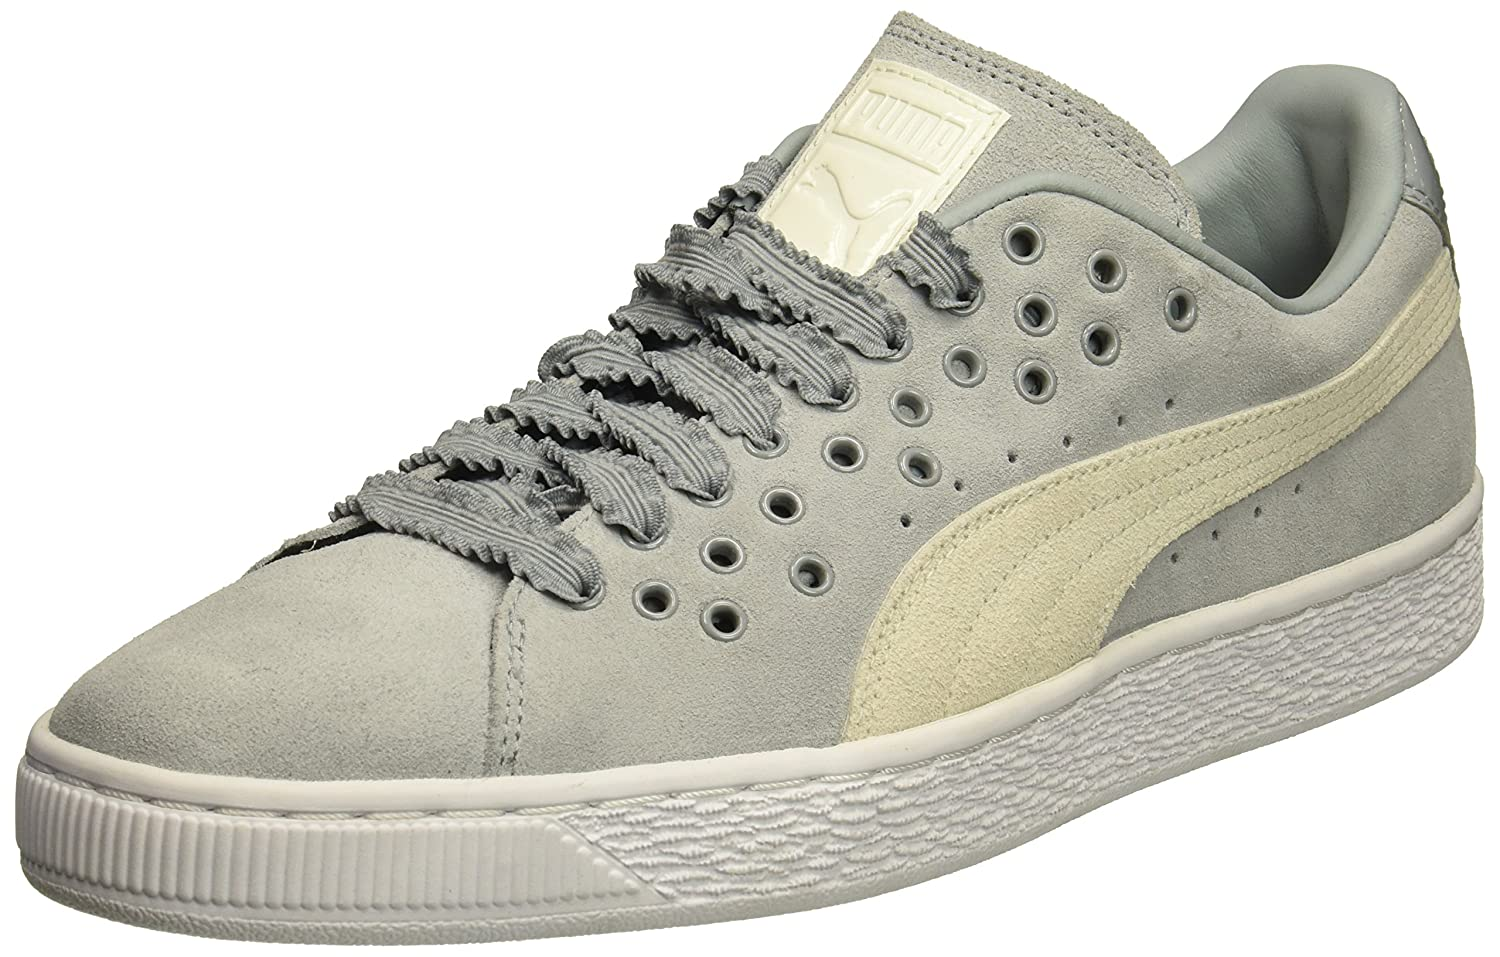 PUMA Women's Suede XL Lace Wn Sneaker B01MXYV336 10 M US|Quarry-marshmallow